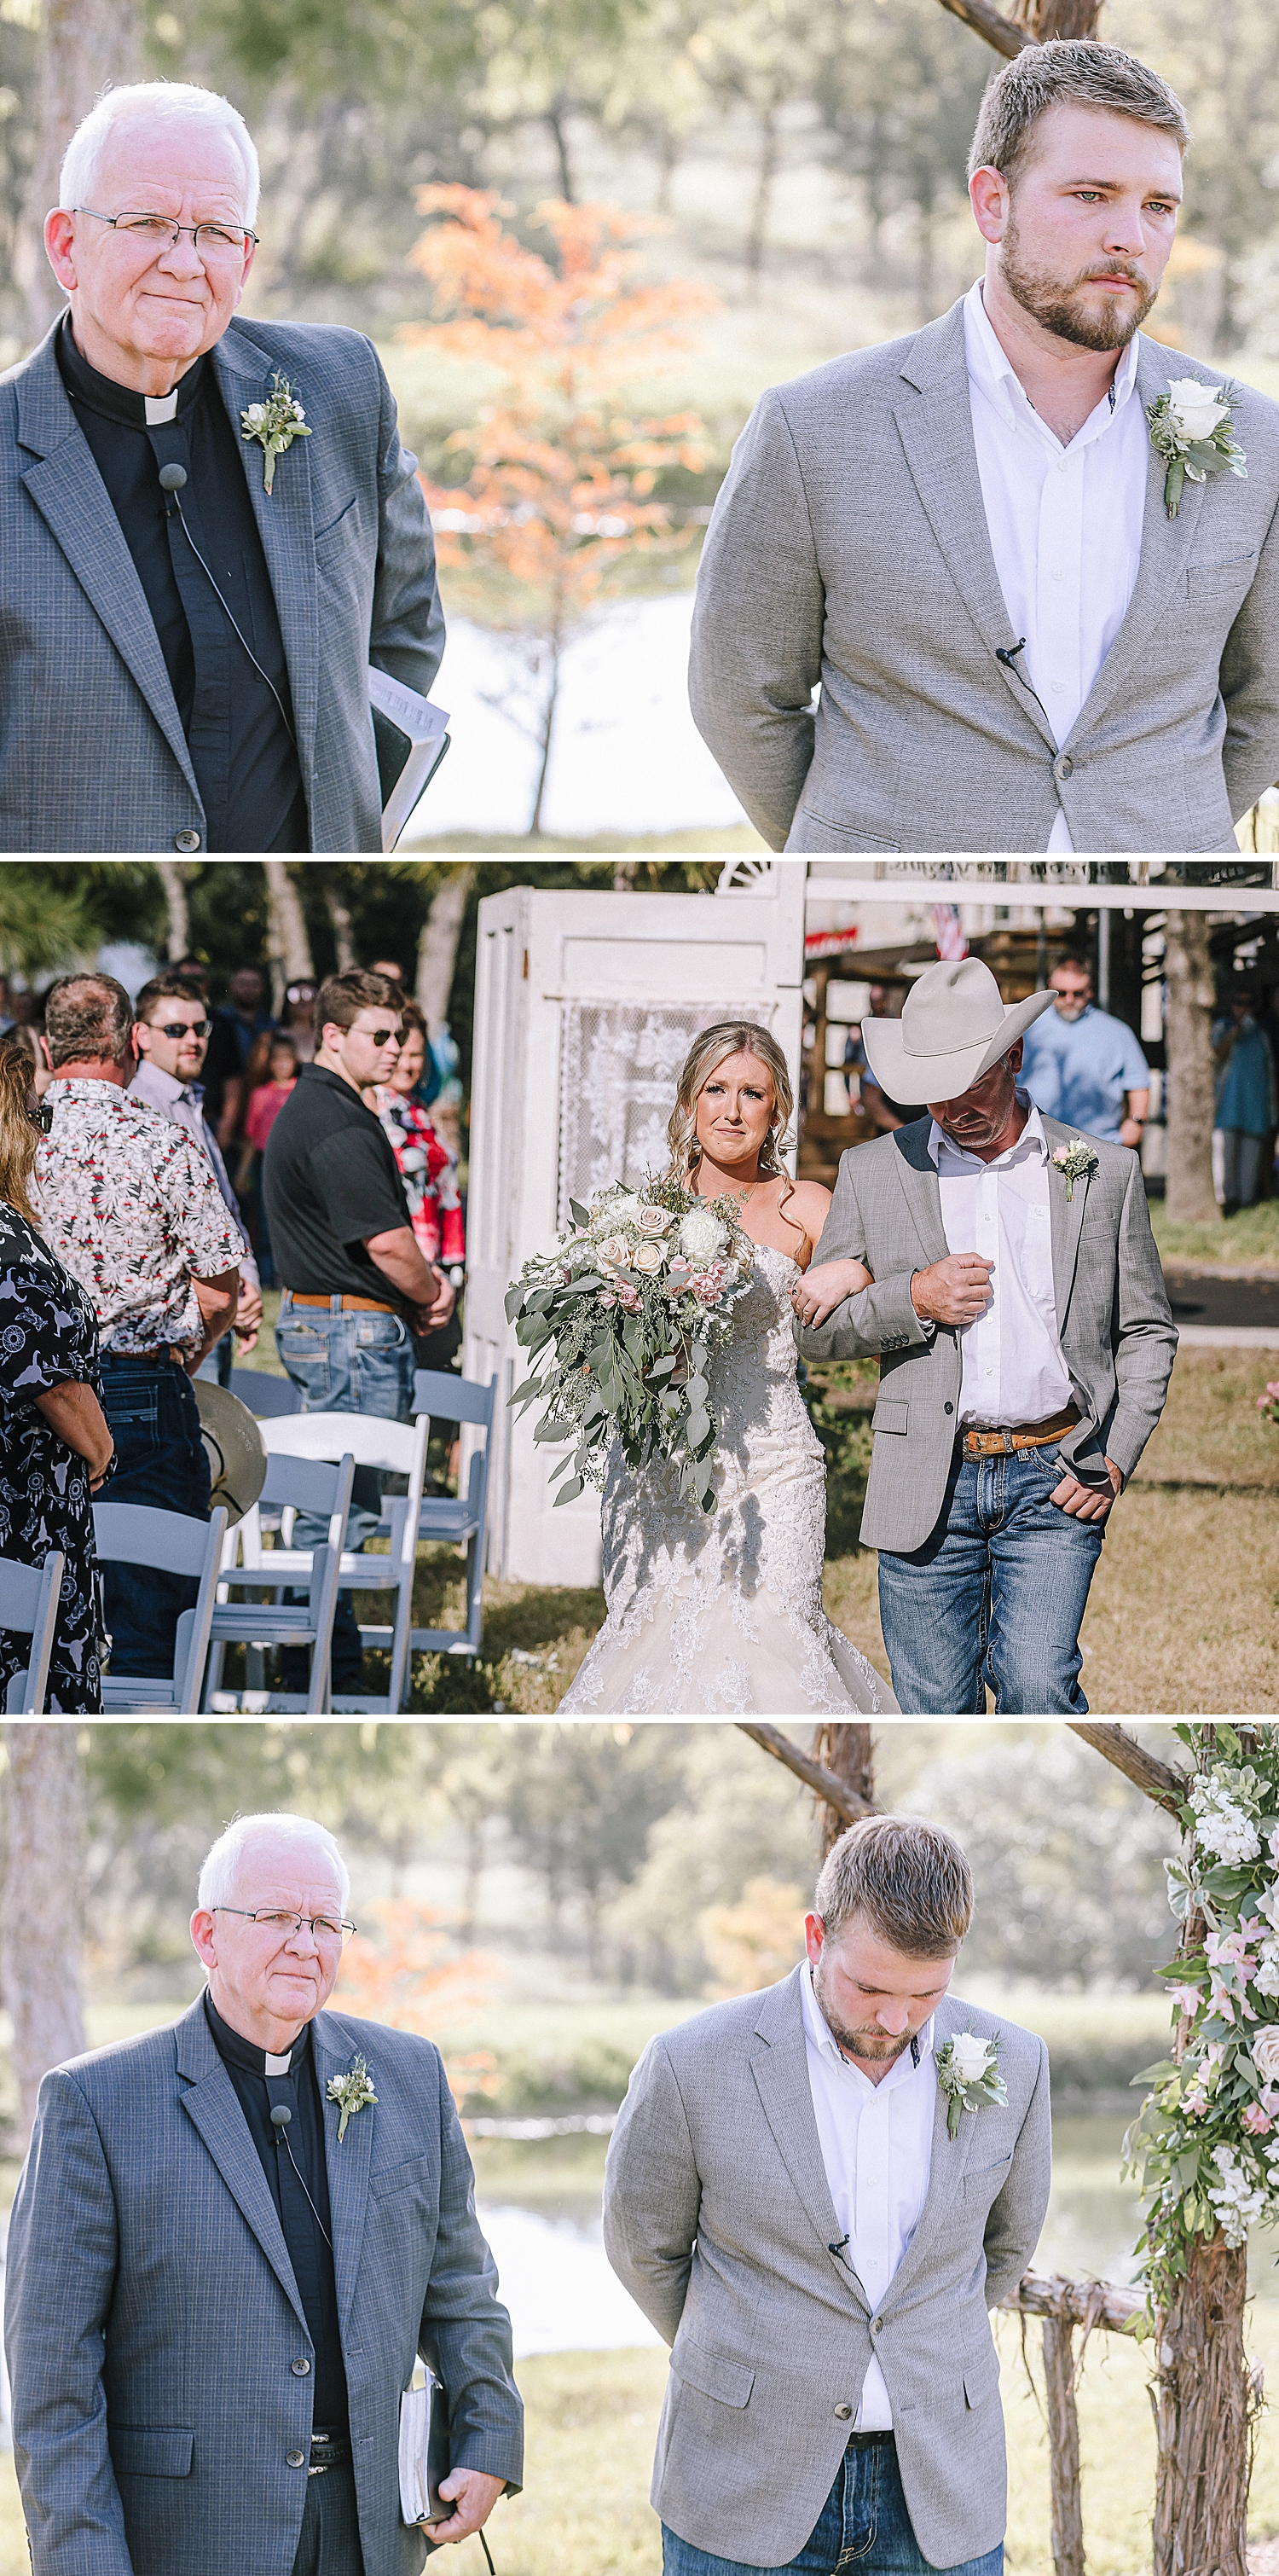 Rackler-Ranch-LaVernia-Texas-Wedding-Carly-Barton-Photography_0080.jpg